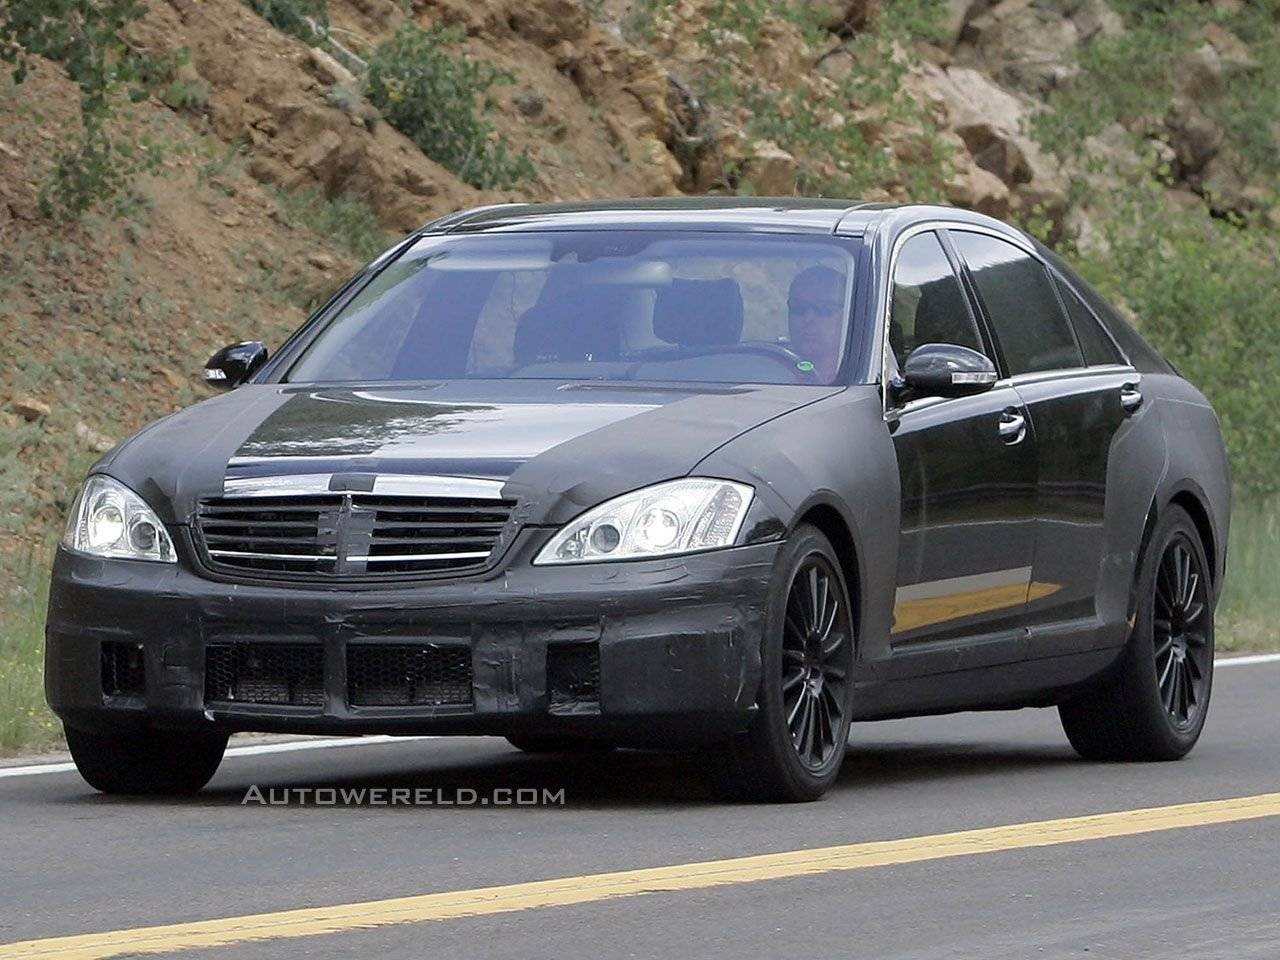 mercedes s klasse amg gespot spyshots. Black Bedroom Furniture Sets. Home Design Ideas